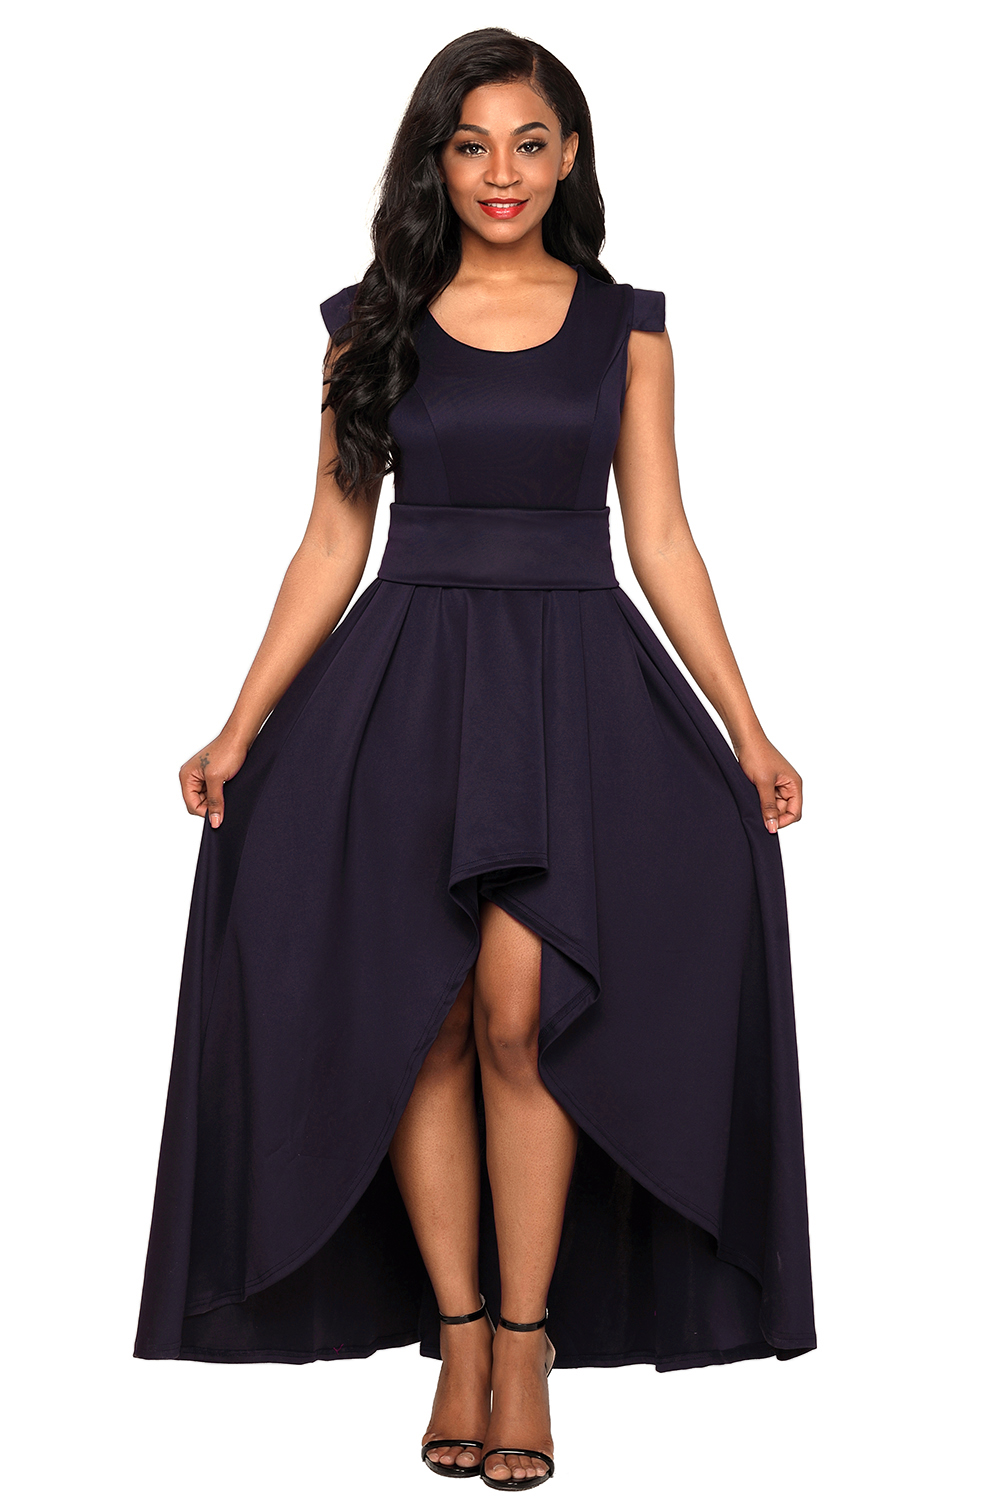 US$38.5 Zkess Navy Sophisticated Party Queen High Low Dress